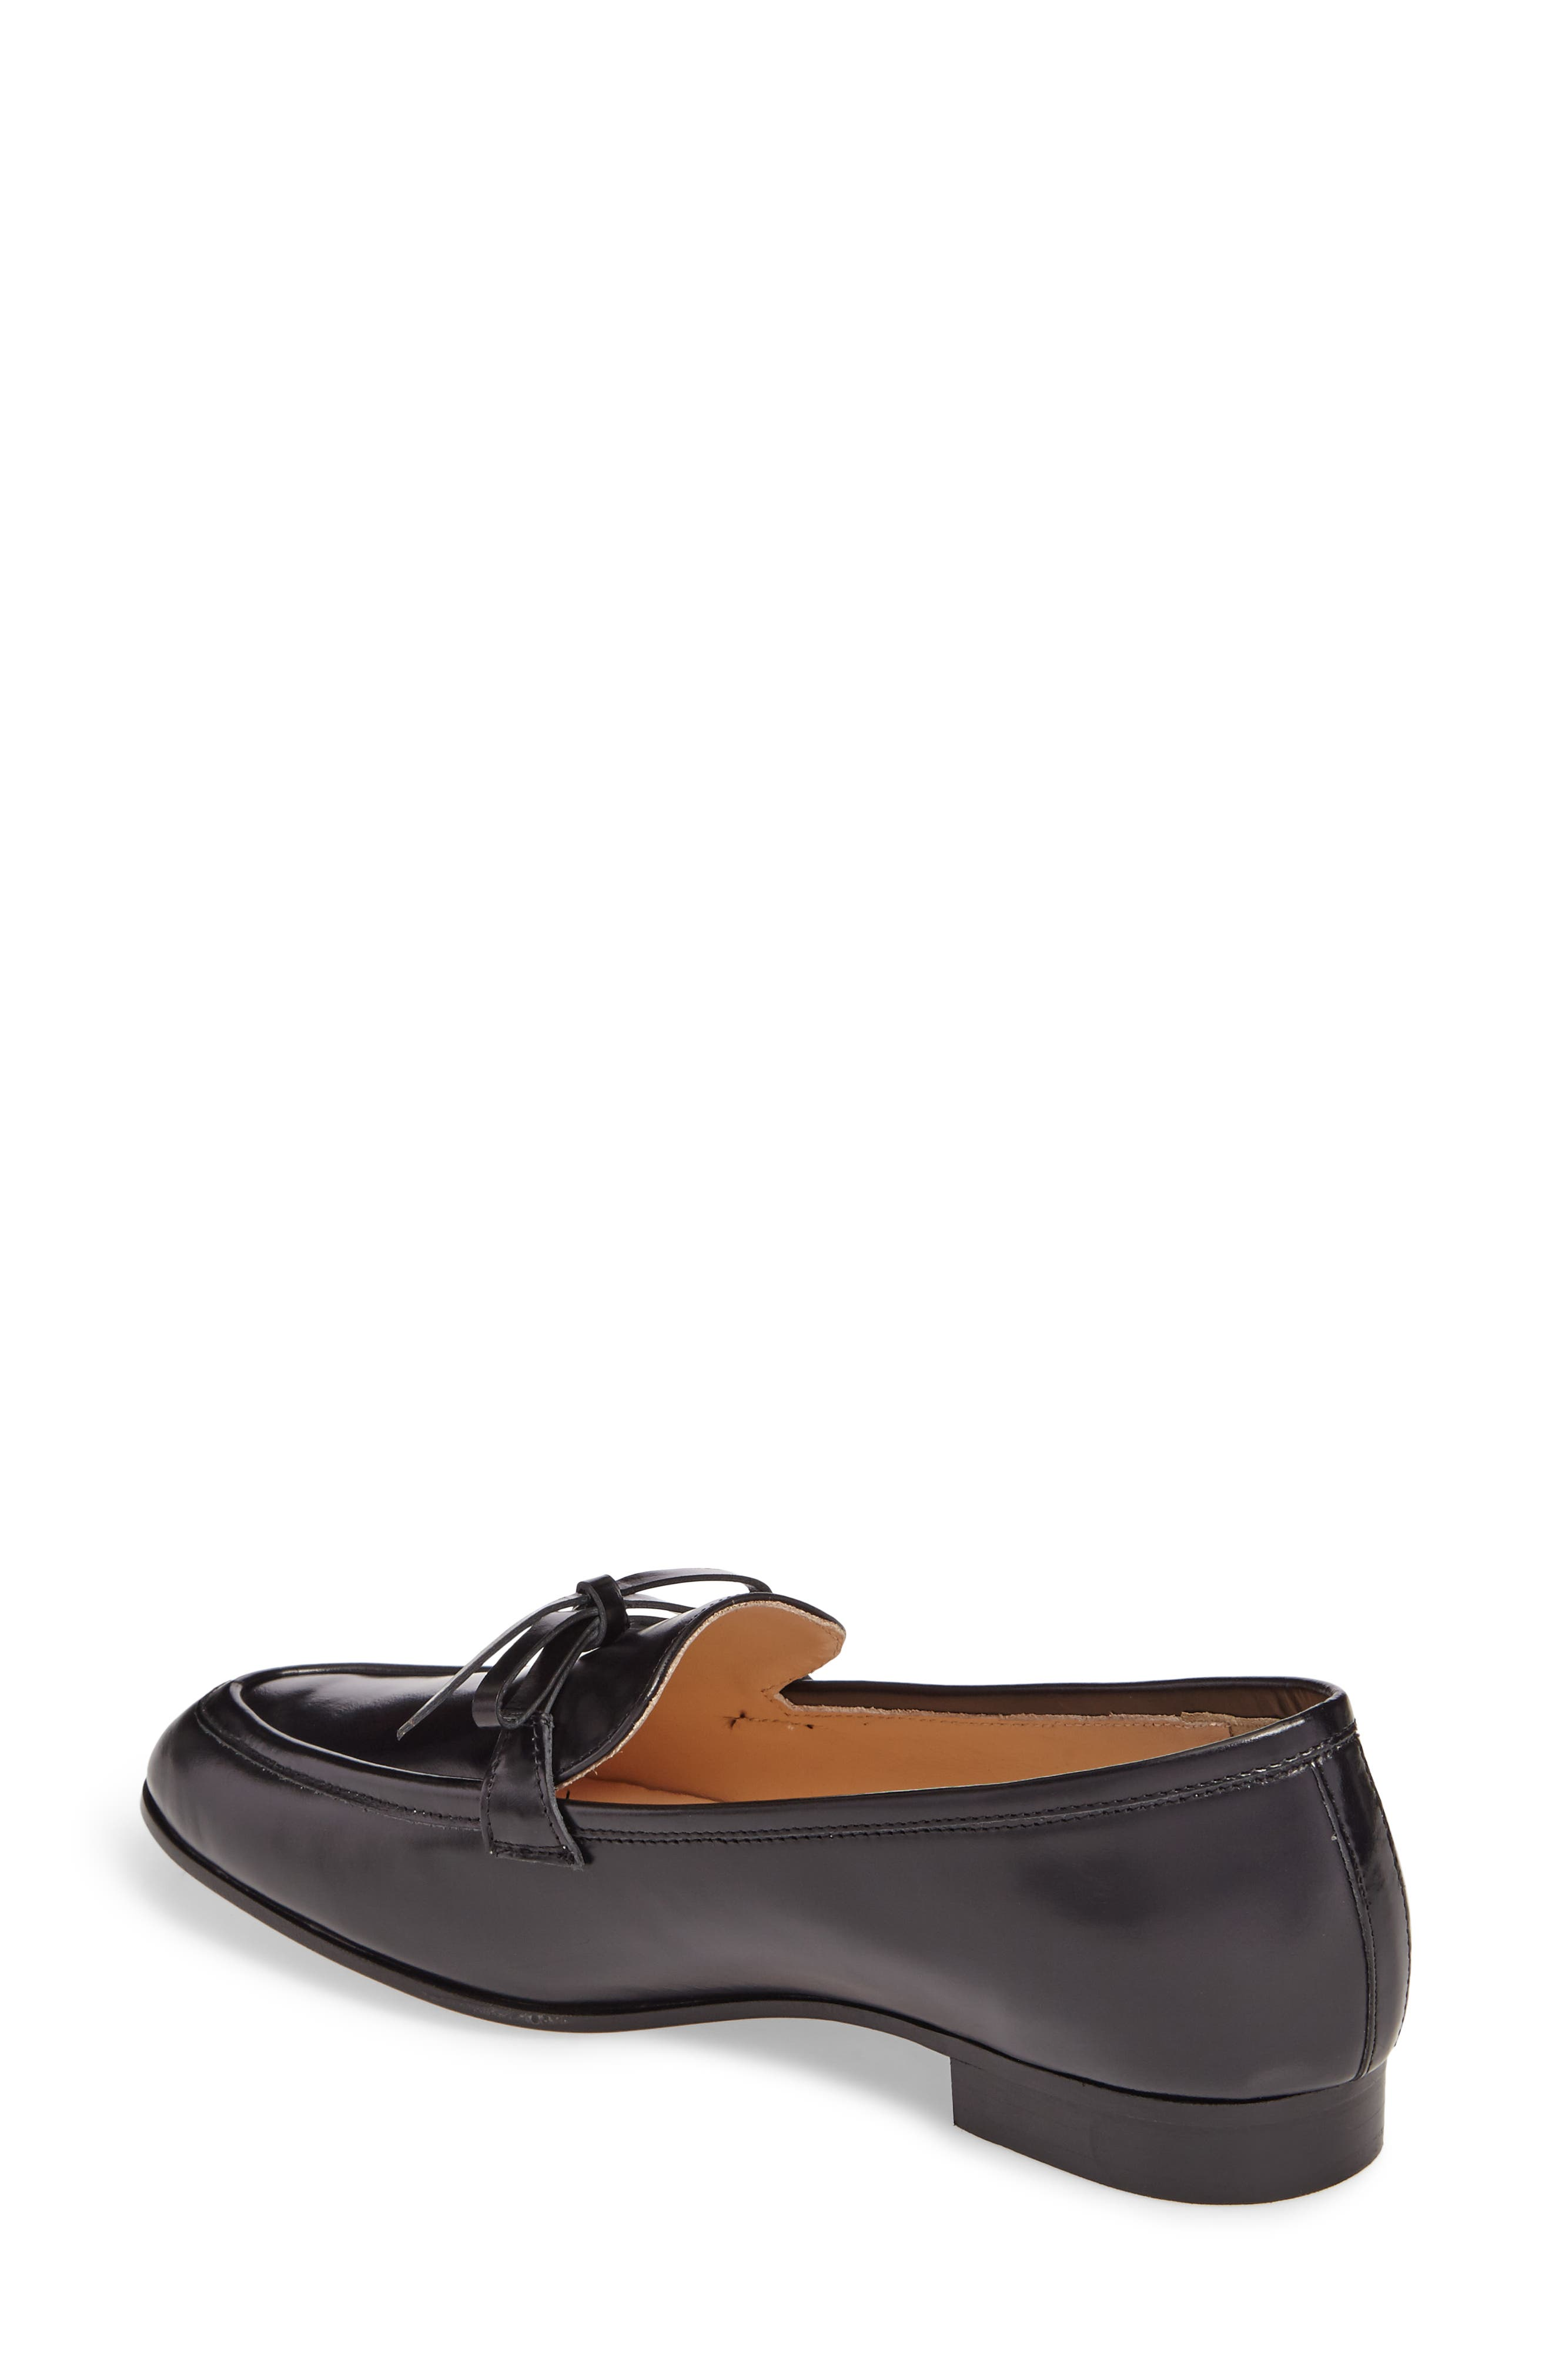 Bow Loafer,                             Alternate thumbnail 2, color,                             001